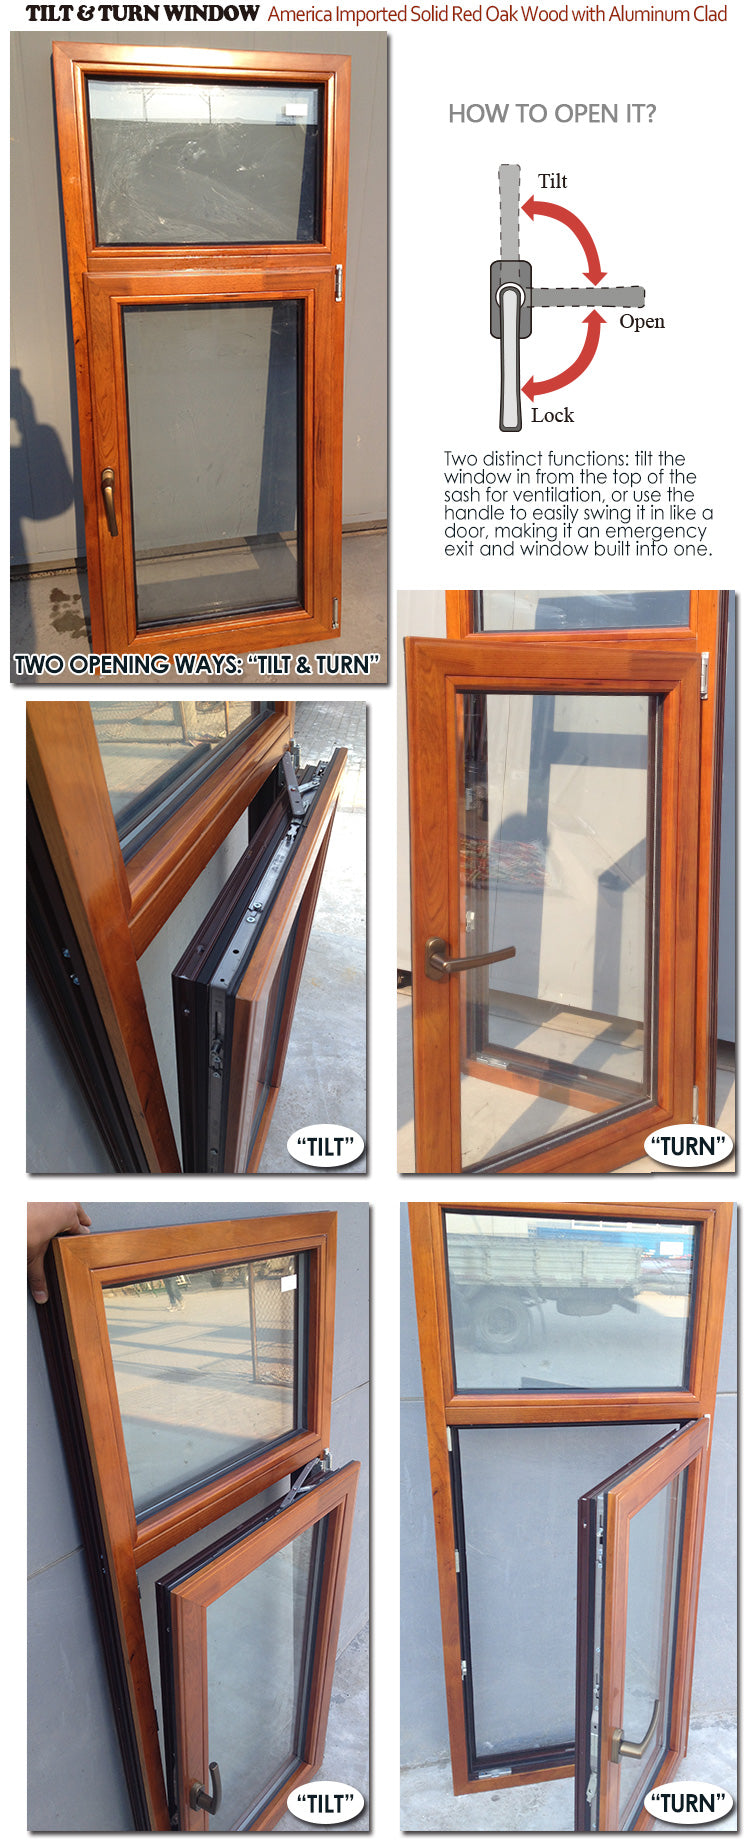 tilt turn window-13-01